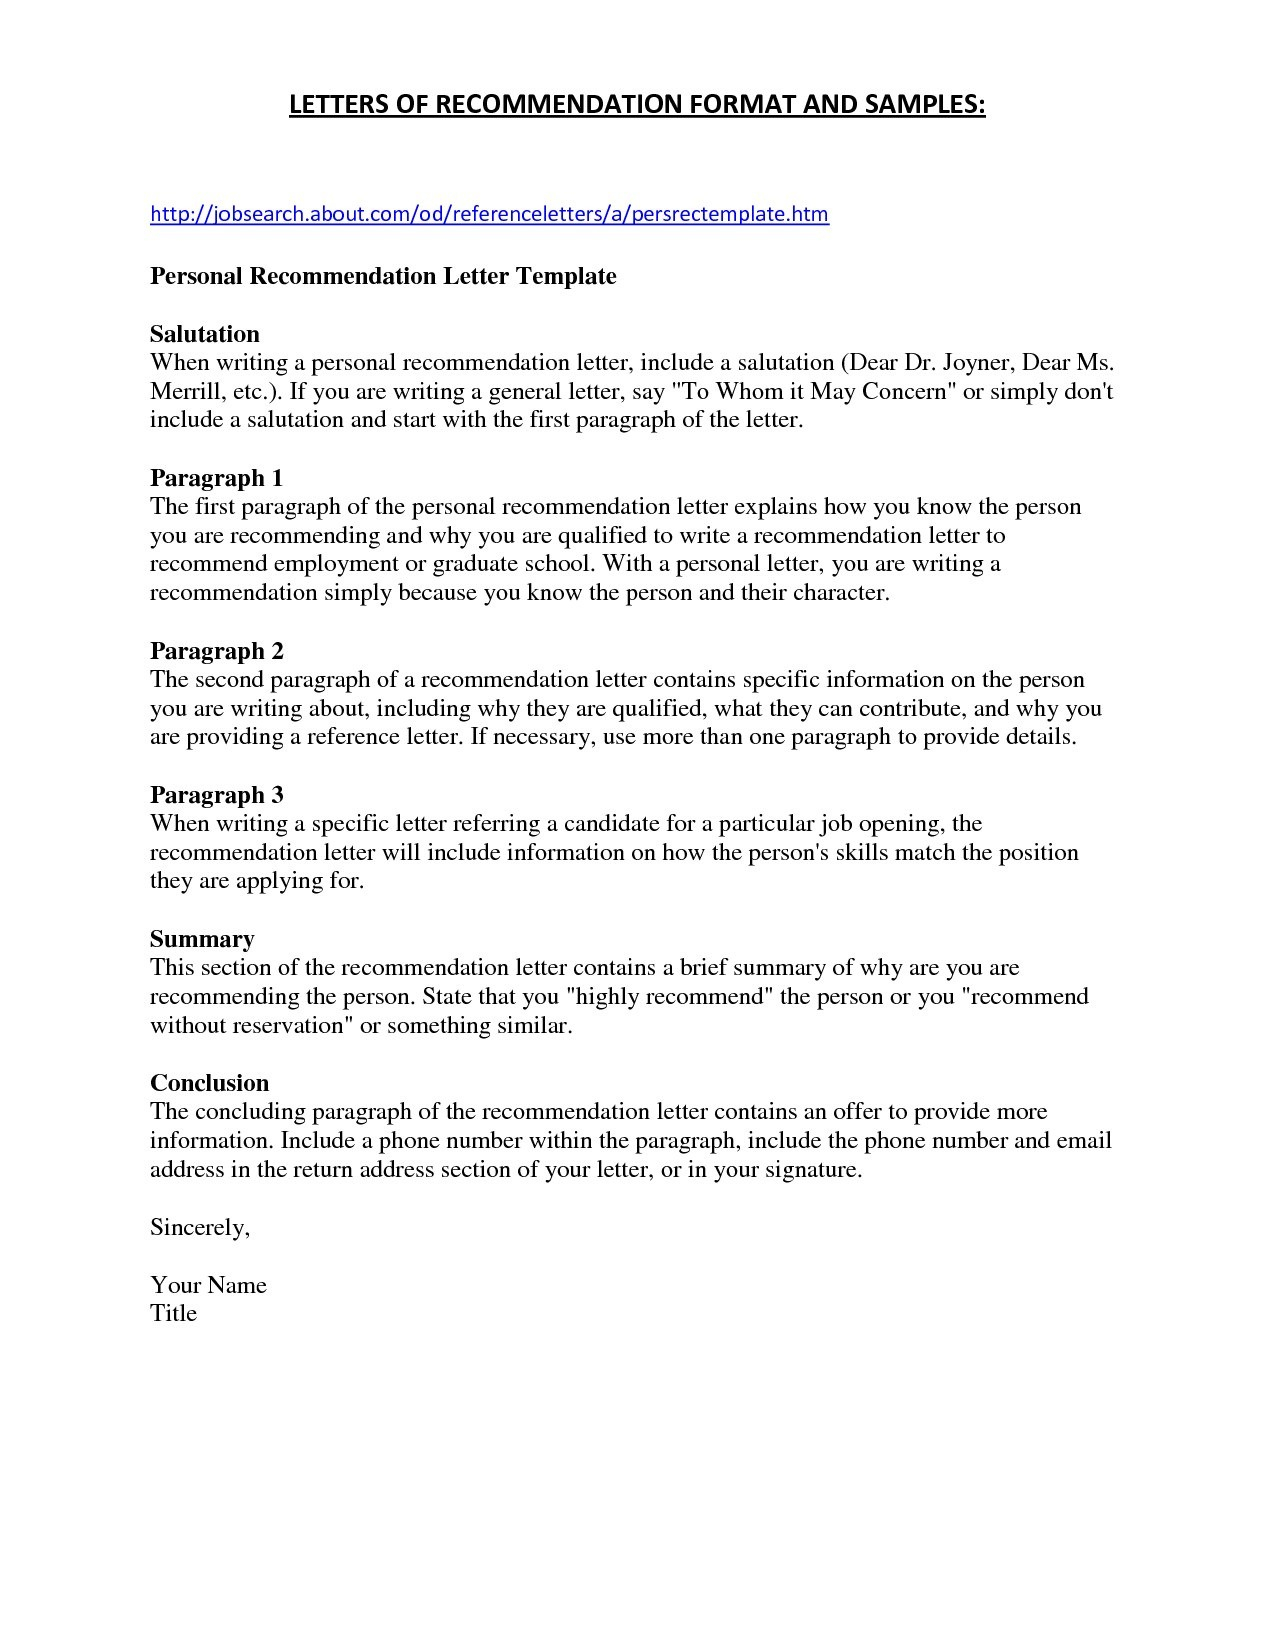 Letter Template to Irs - Best Irs Letter Template